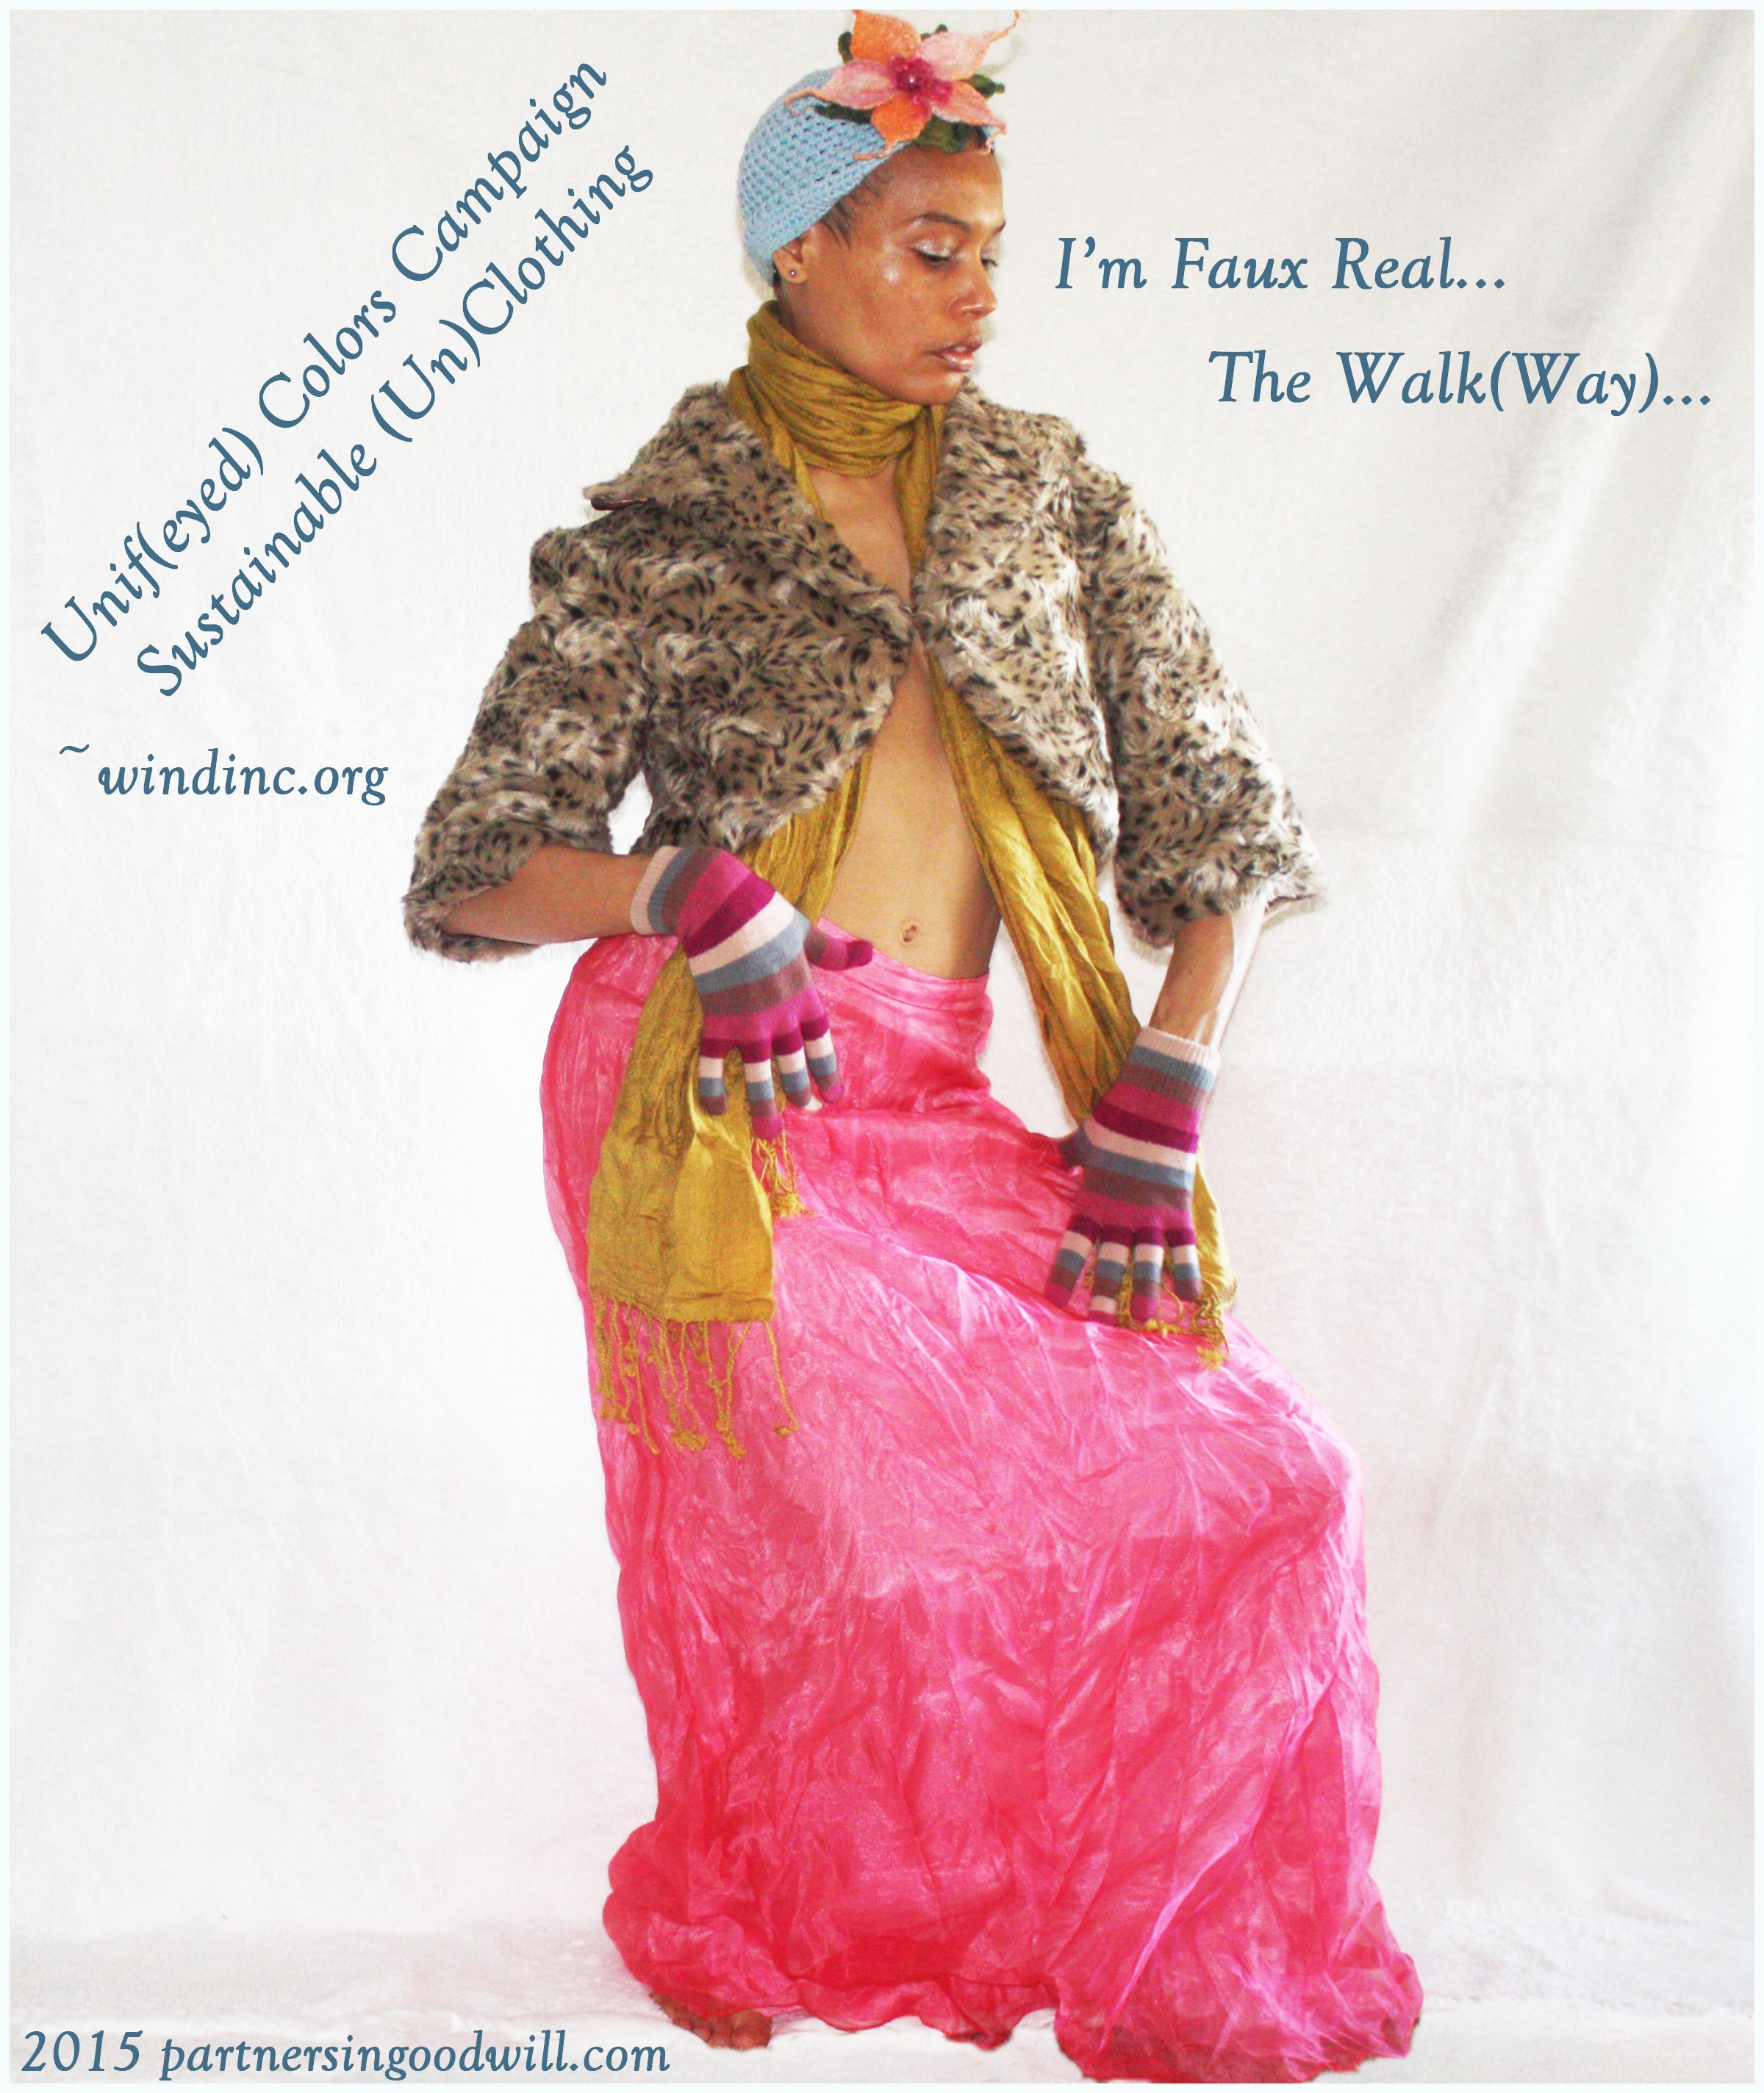 I'm Faux Real... The Walk(Way) is a concept created by